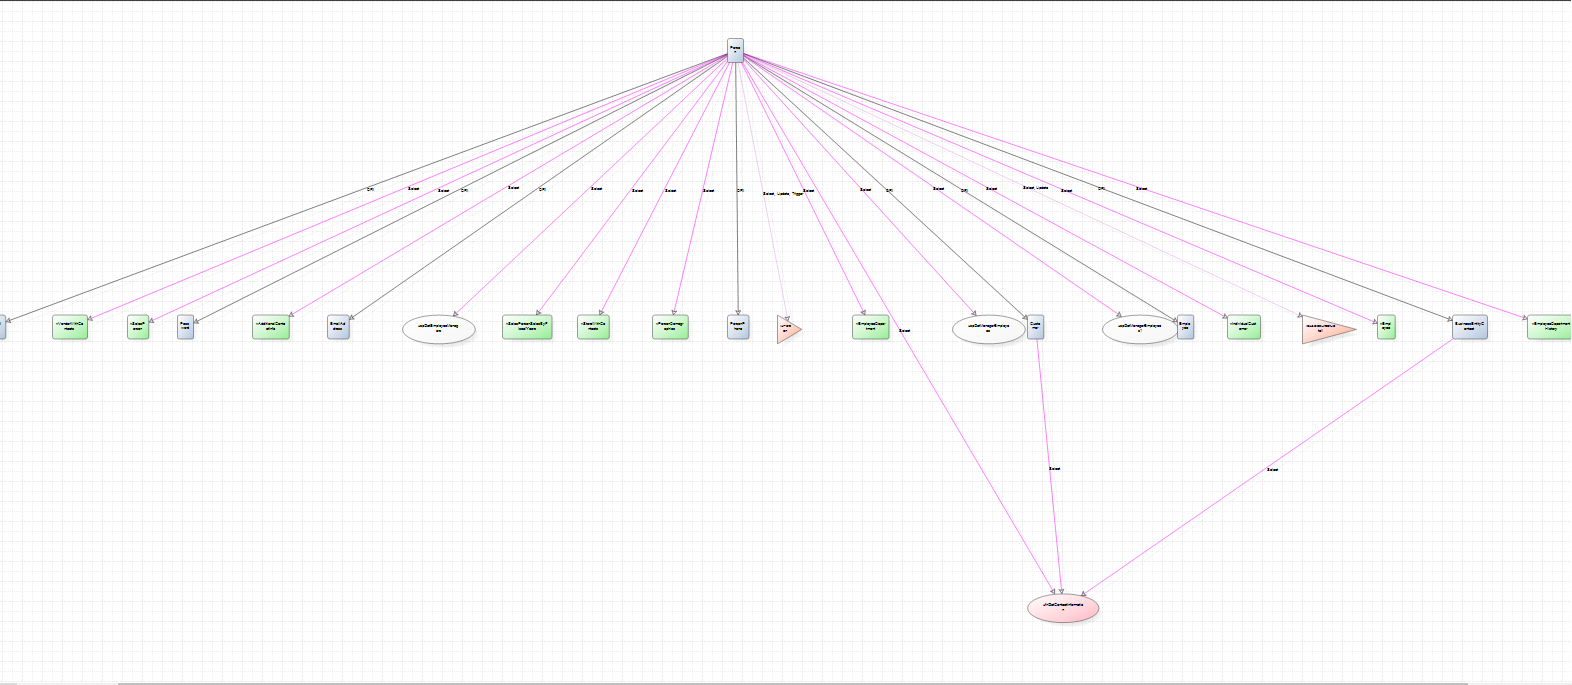 How to visualize SQL database objects dependencies